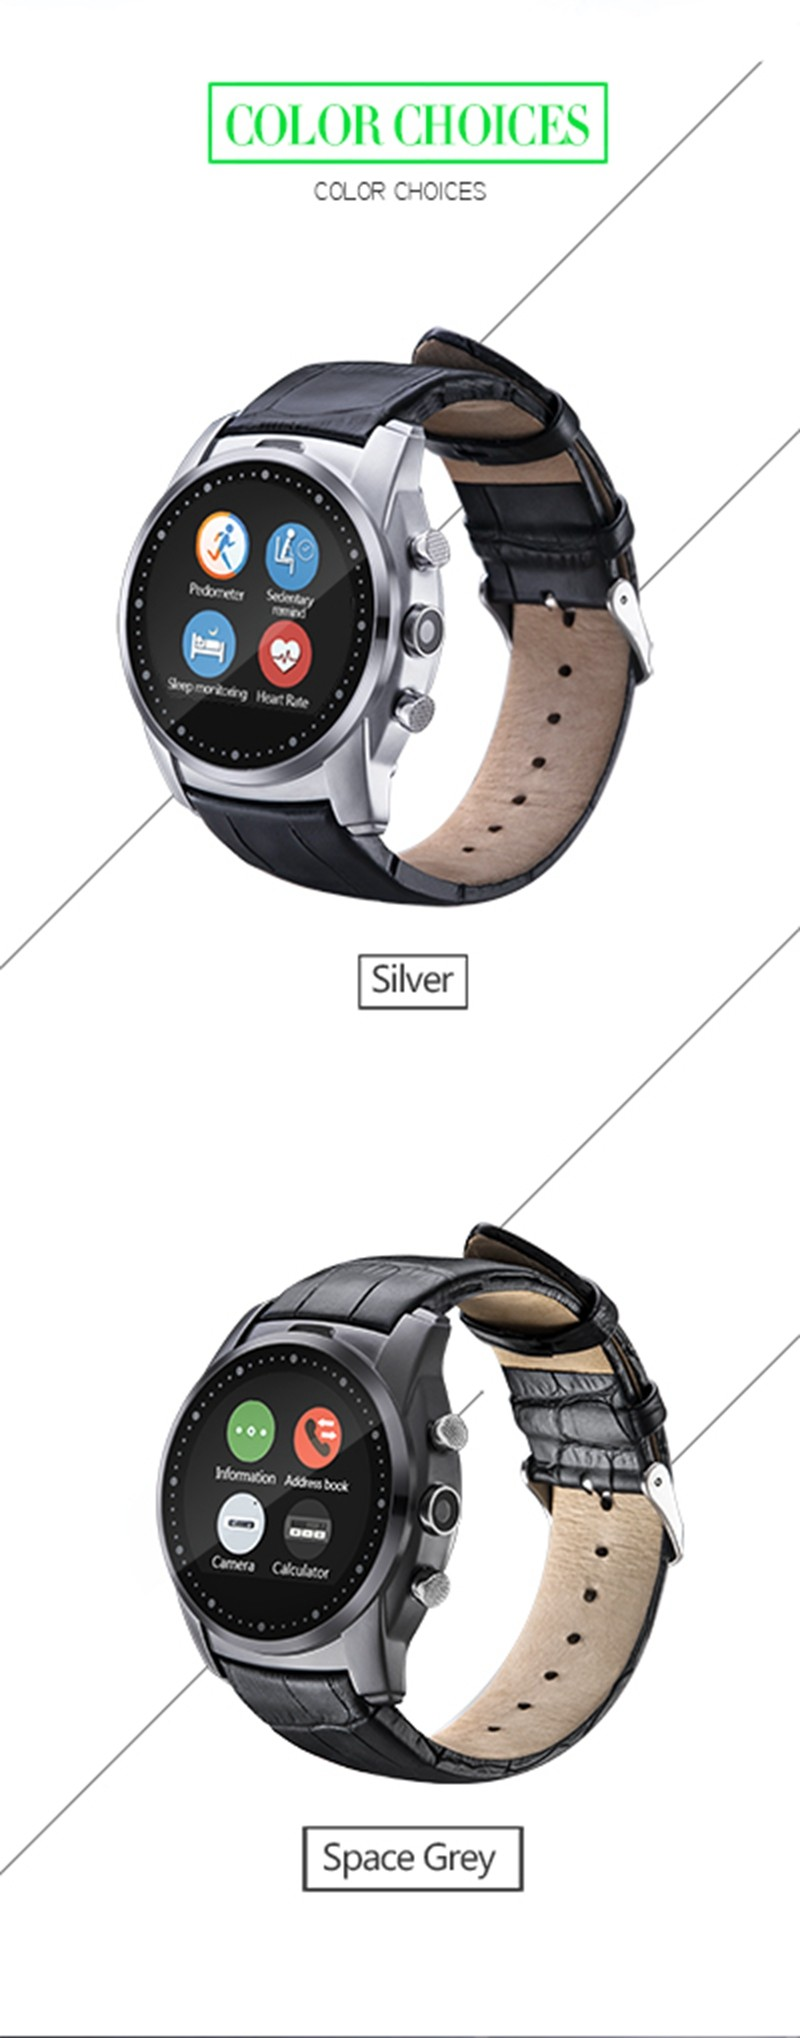 AS Seen On TV A8 Power Gear S Bluetooth Smart Watch WristWatch Sim Insert Antilost Call Heart Rate Tracke For Android Smartphone